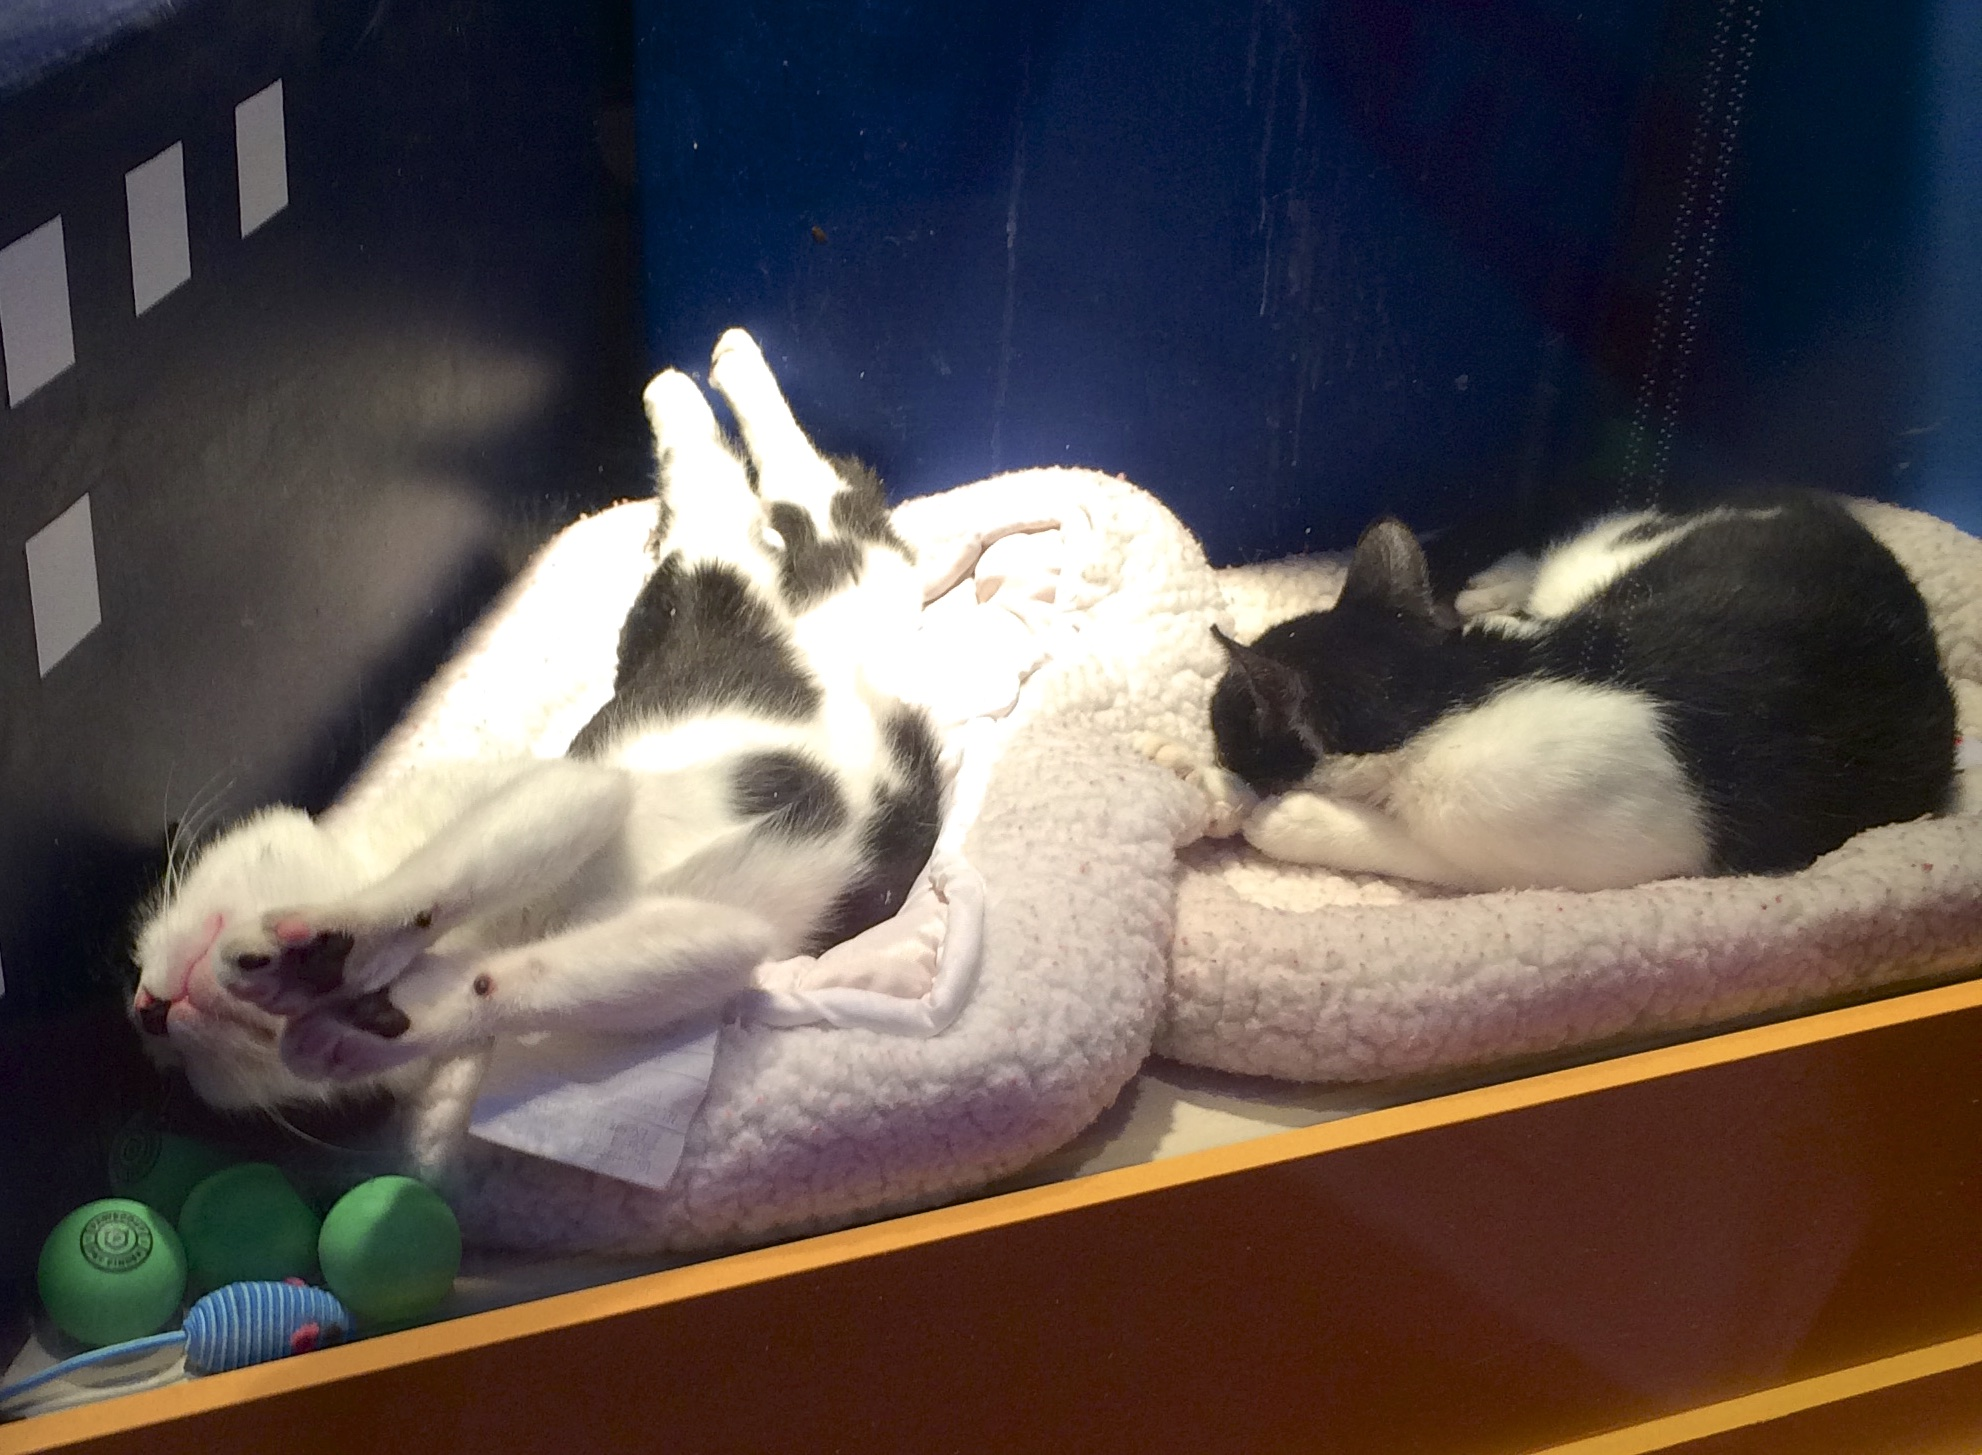 Two Sleeping Tuxedo Cats, One In A Ridiculous Position